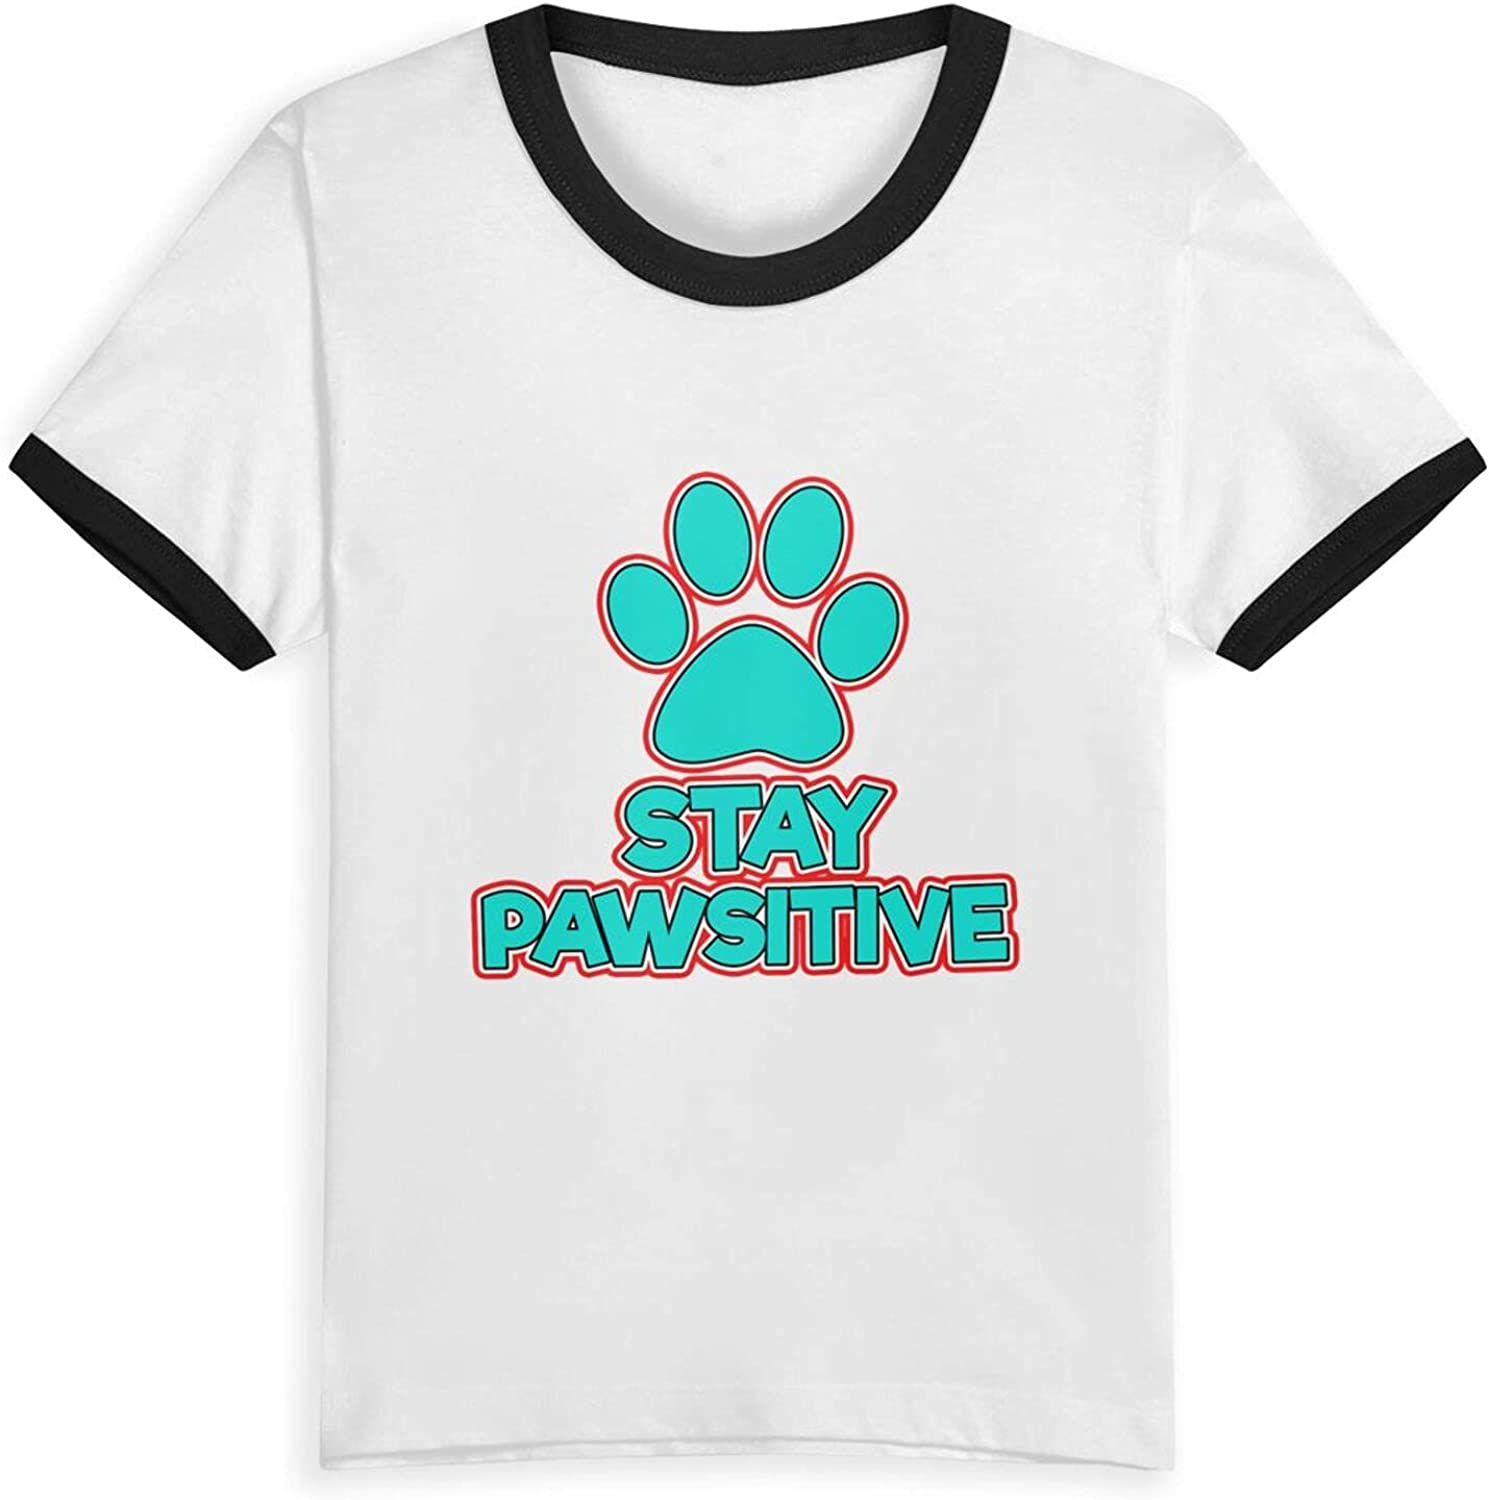 Stay Pawsitive Paws Dog T-Shirts Novelty for Kids Tees with Cool Designs